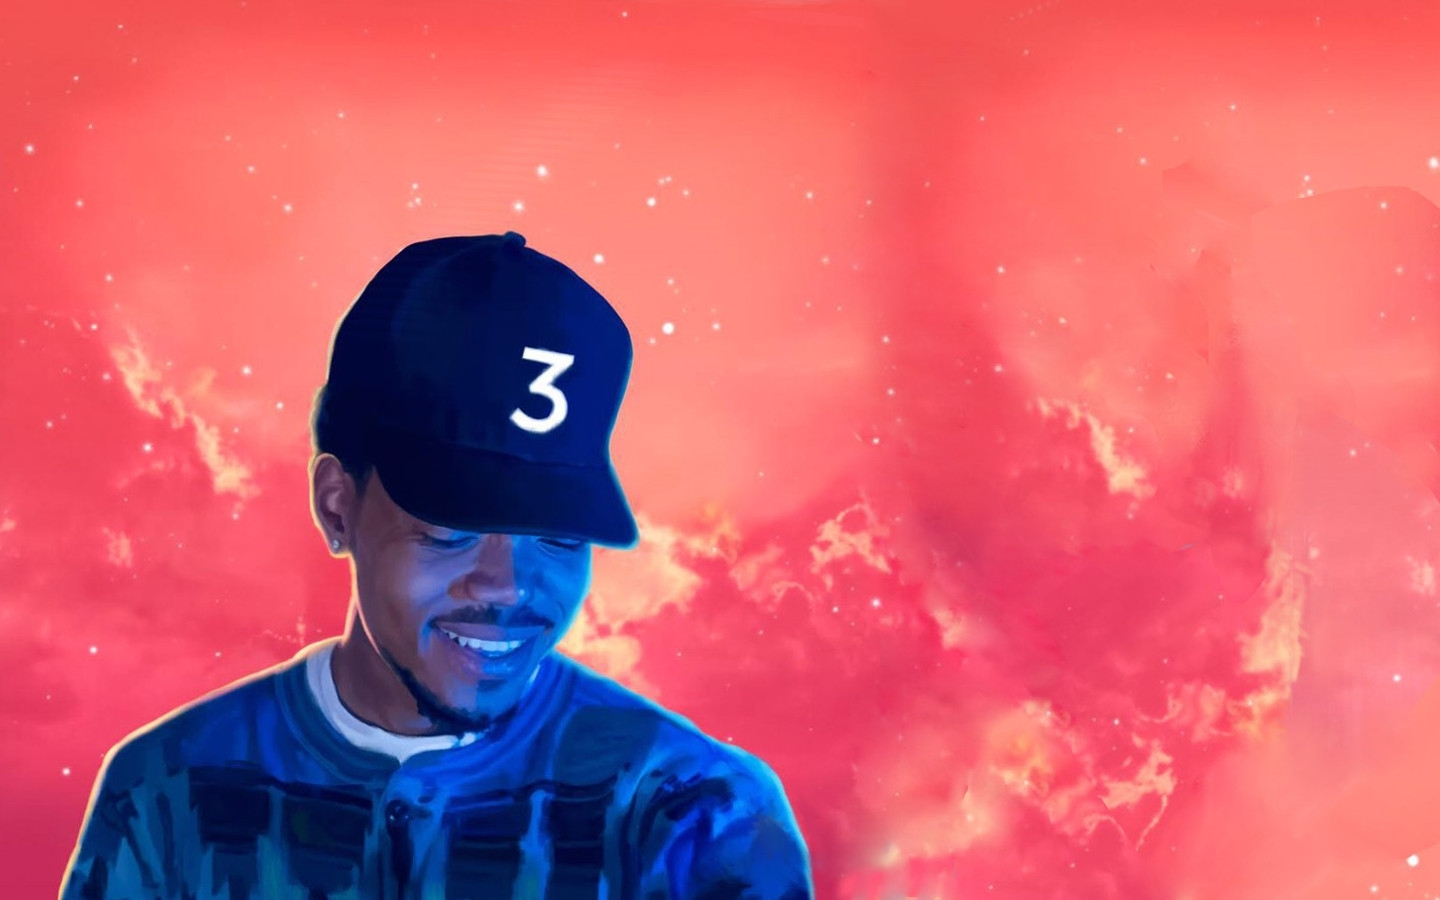 chance 3 wallpaper [1440x900][oc] : chancetherapper